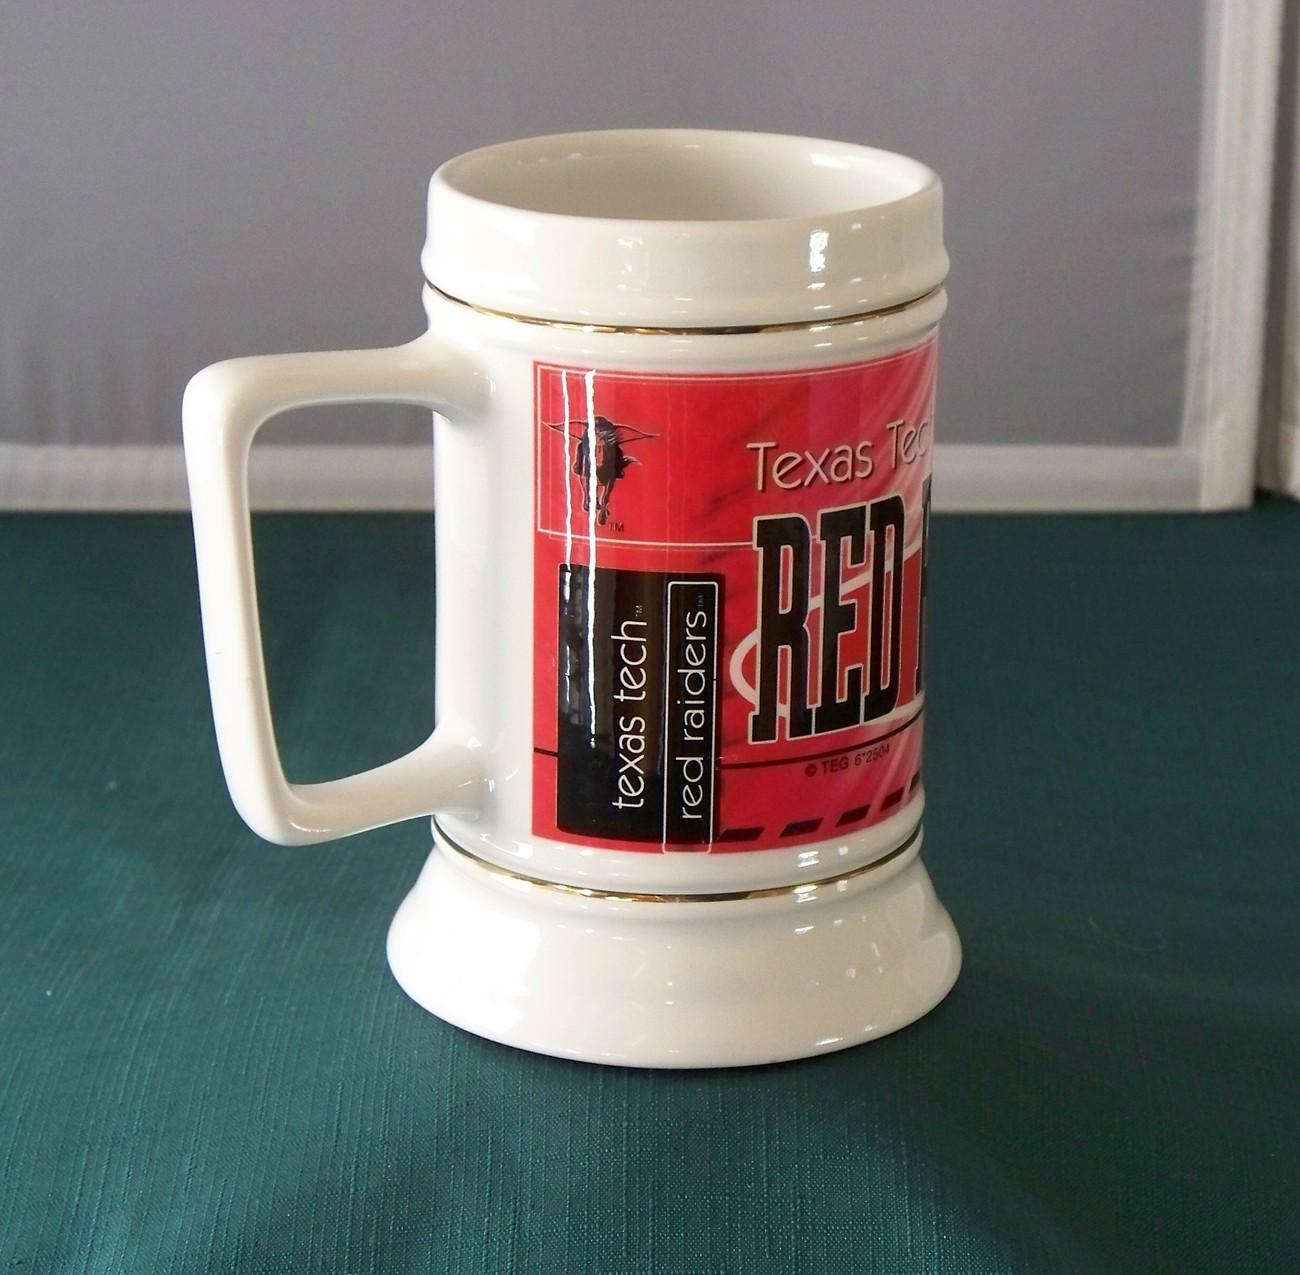 Texas Tech 28 Oz Mug Stein Red & Black VGC